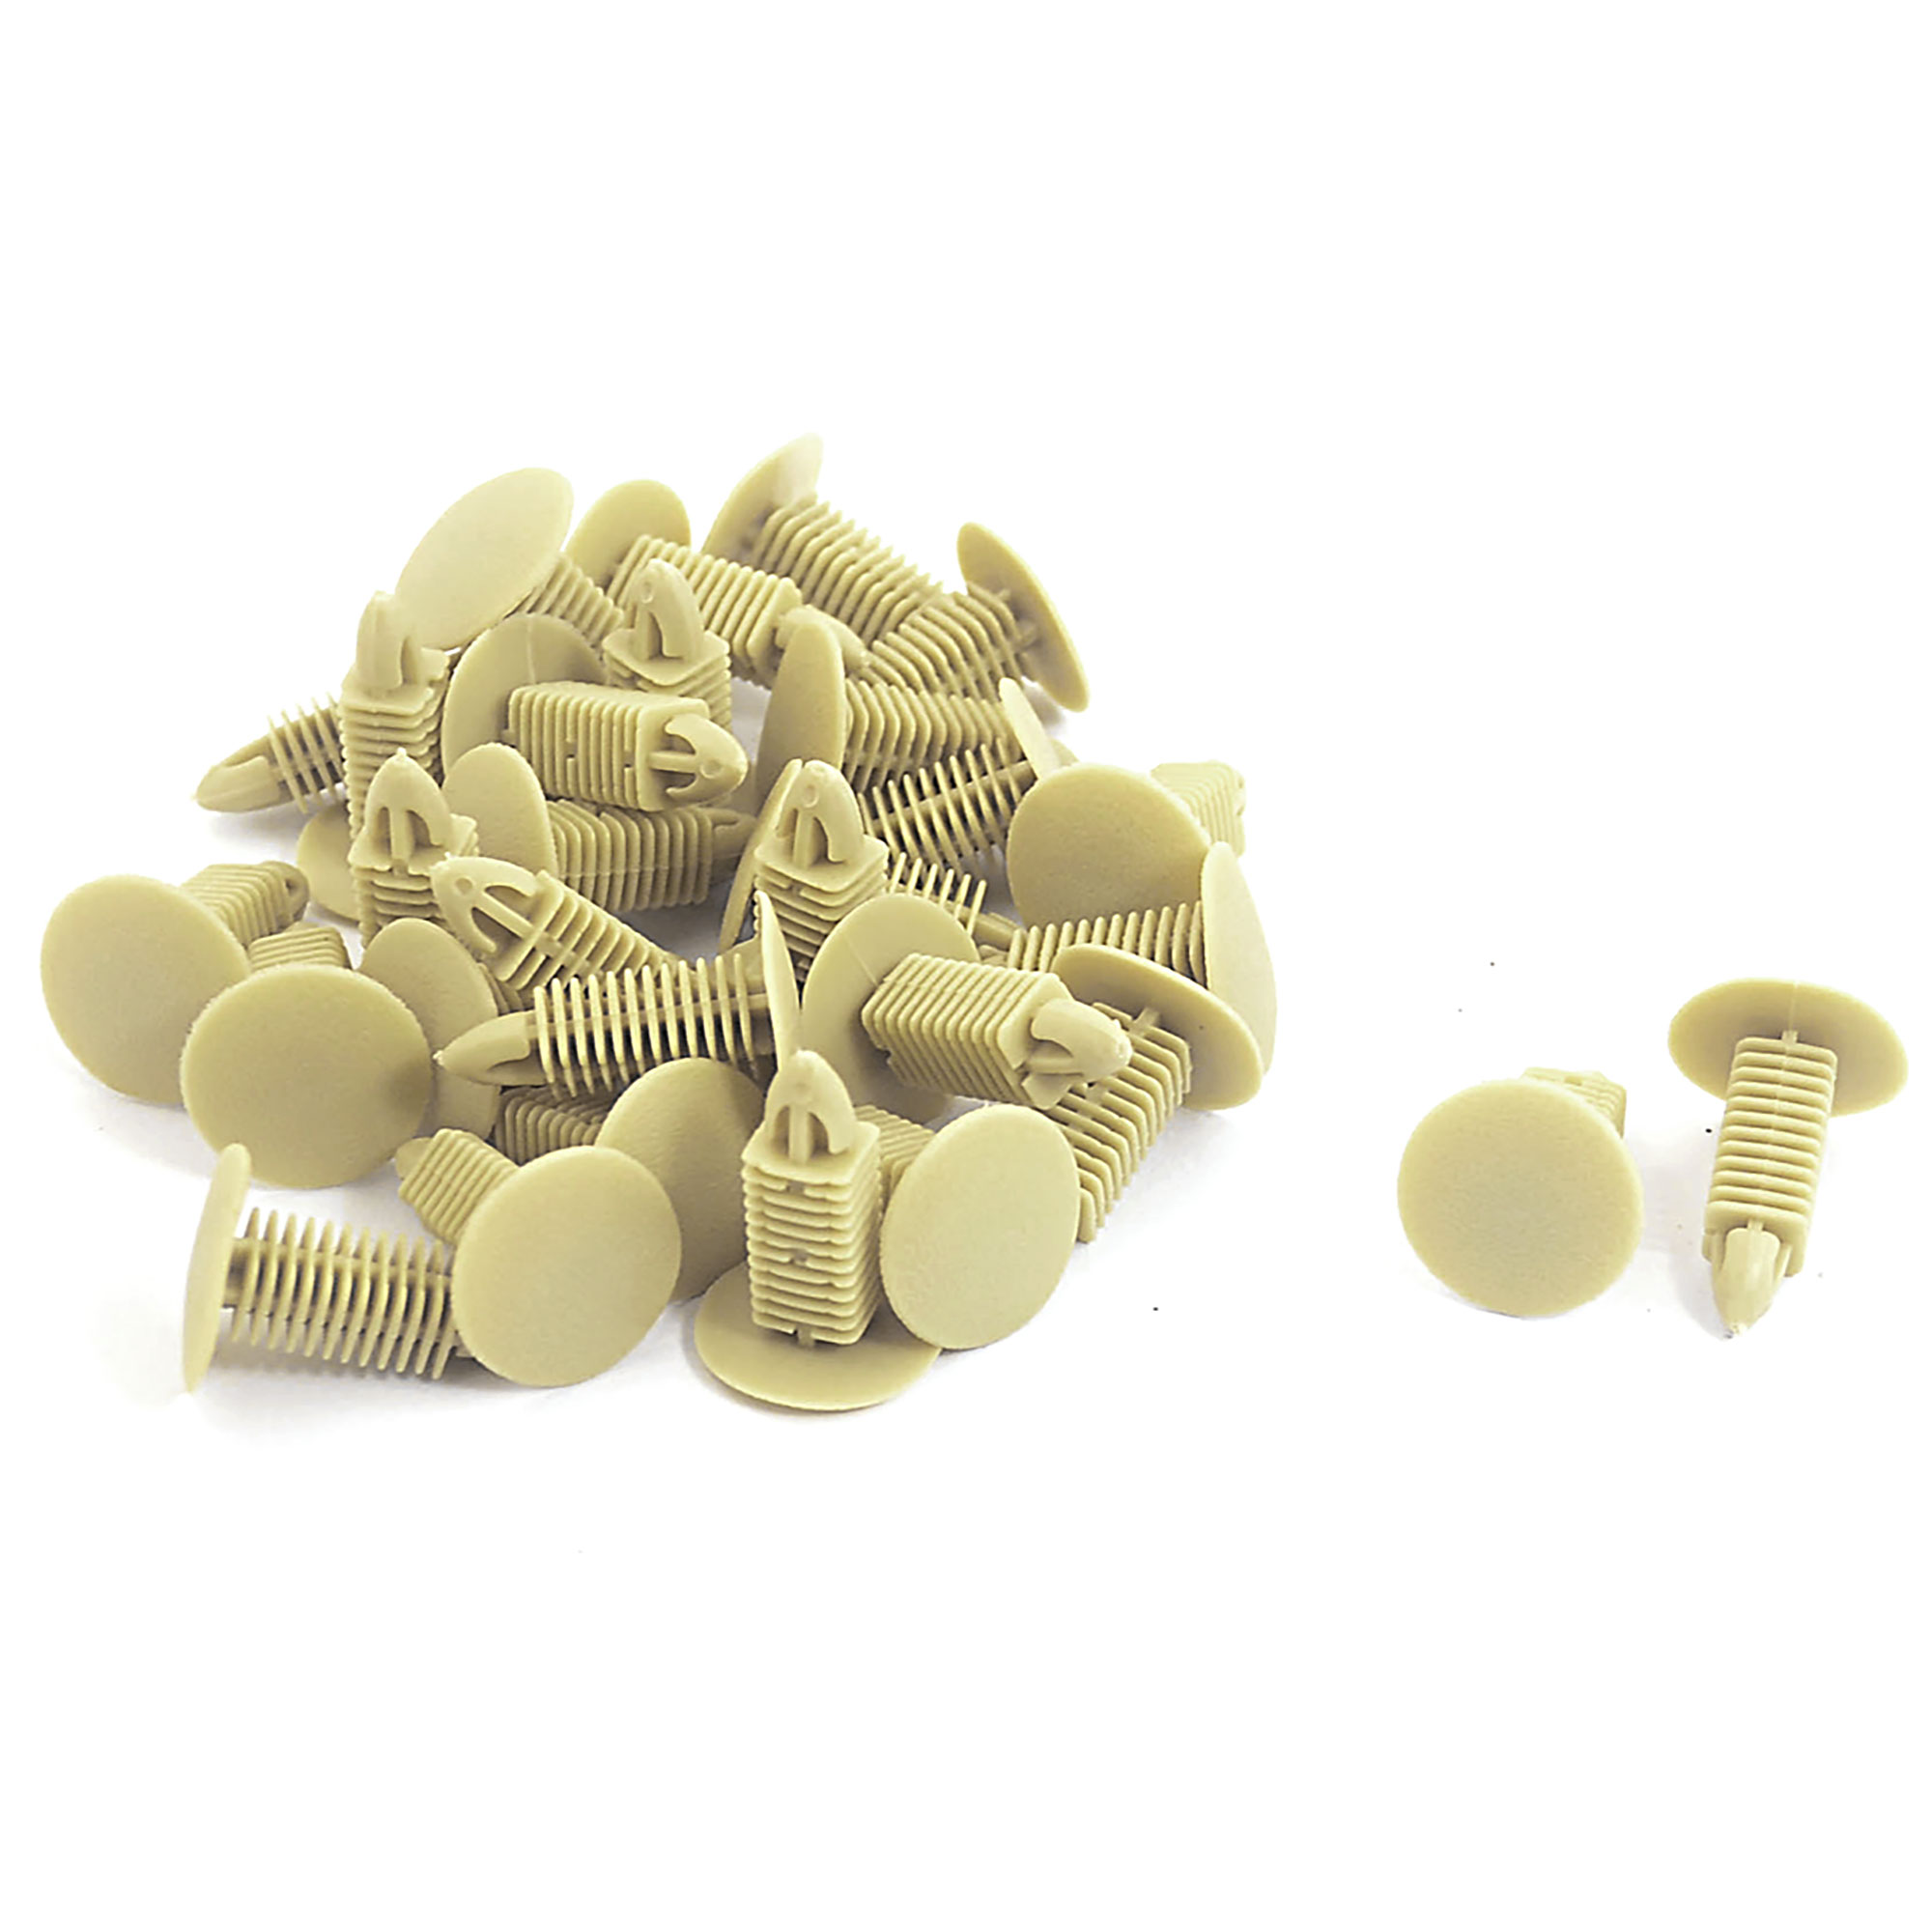 Car Auto Plastic Buckle Ceiling Trim Rivets Clips Khaki 30 Pcs